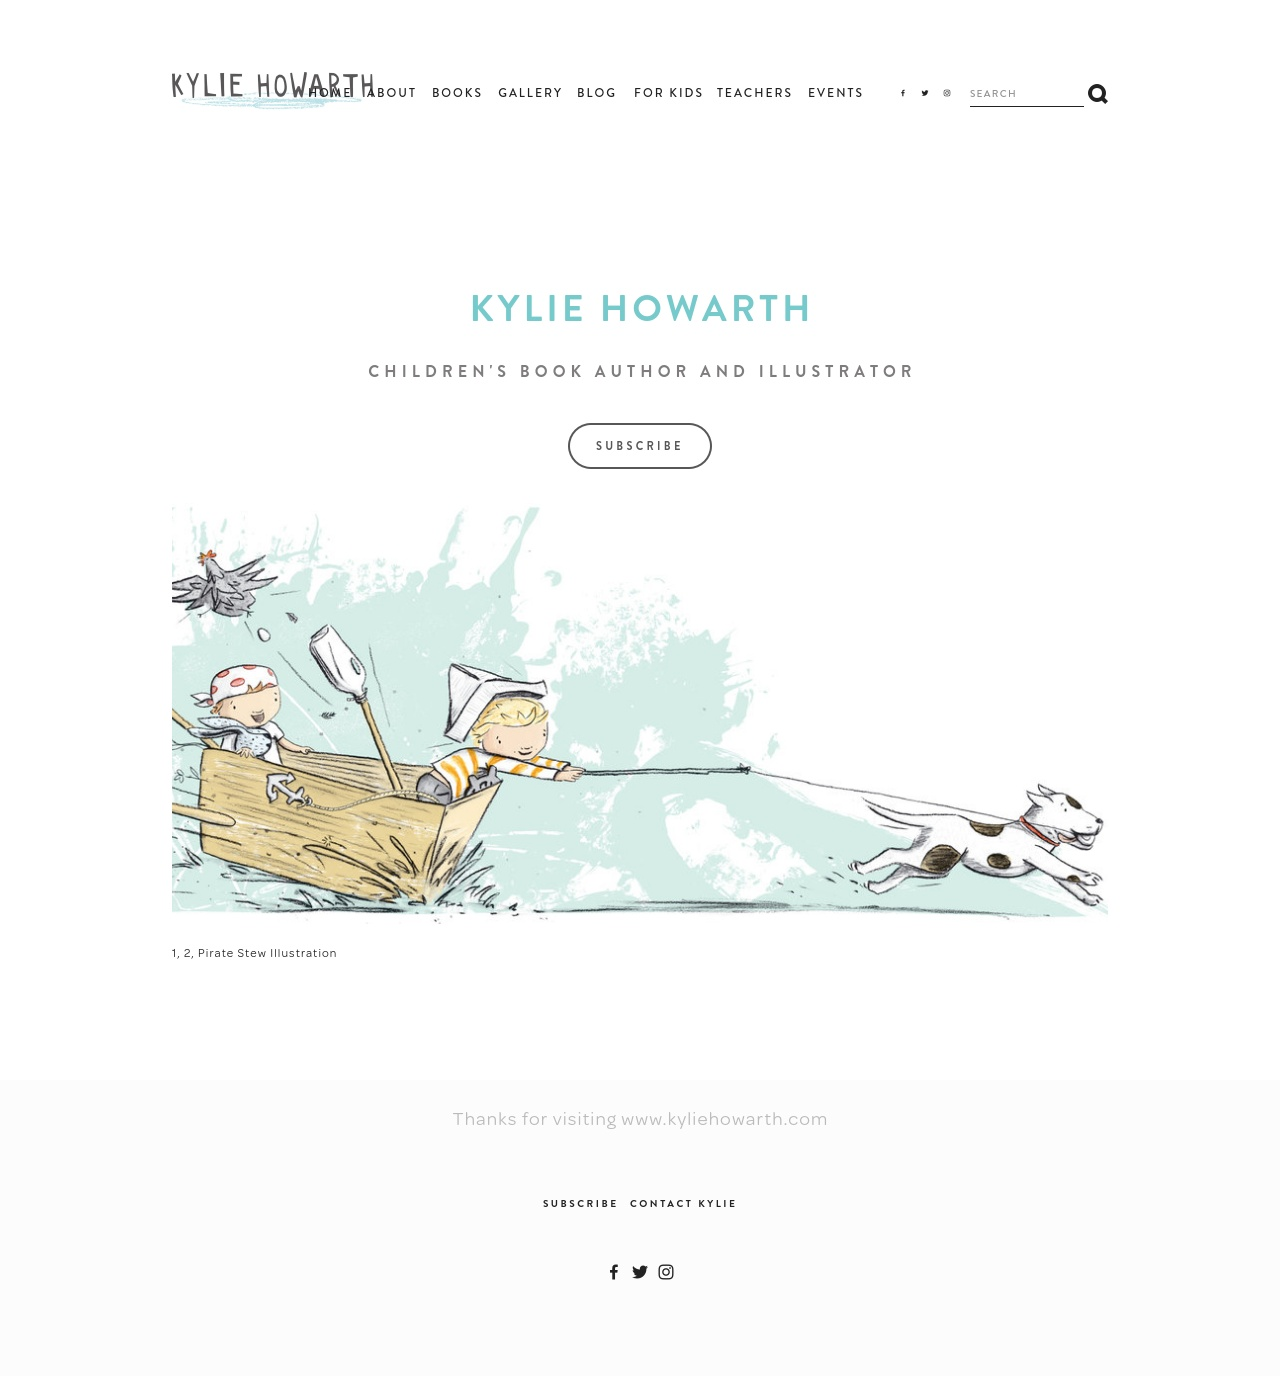 Kylie Howarth website home page